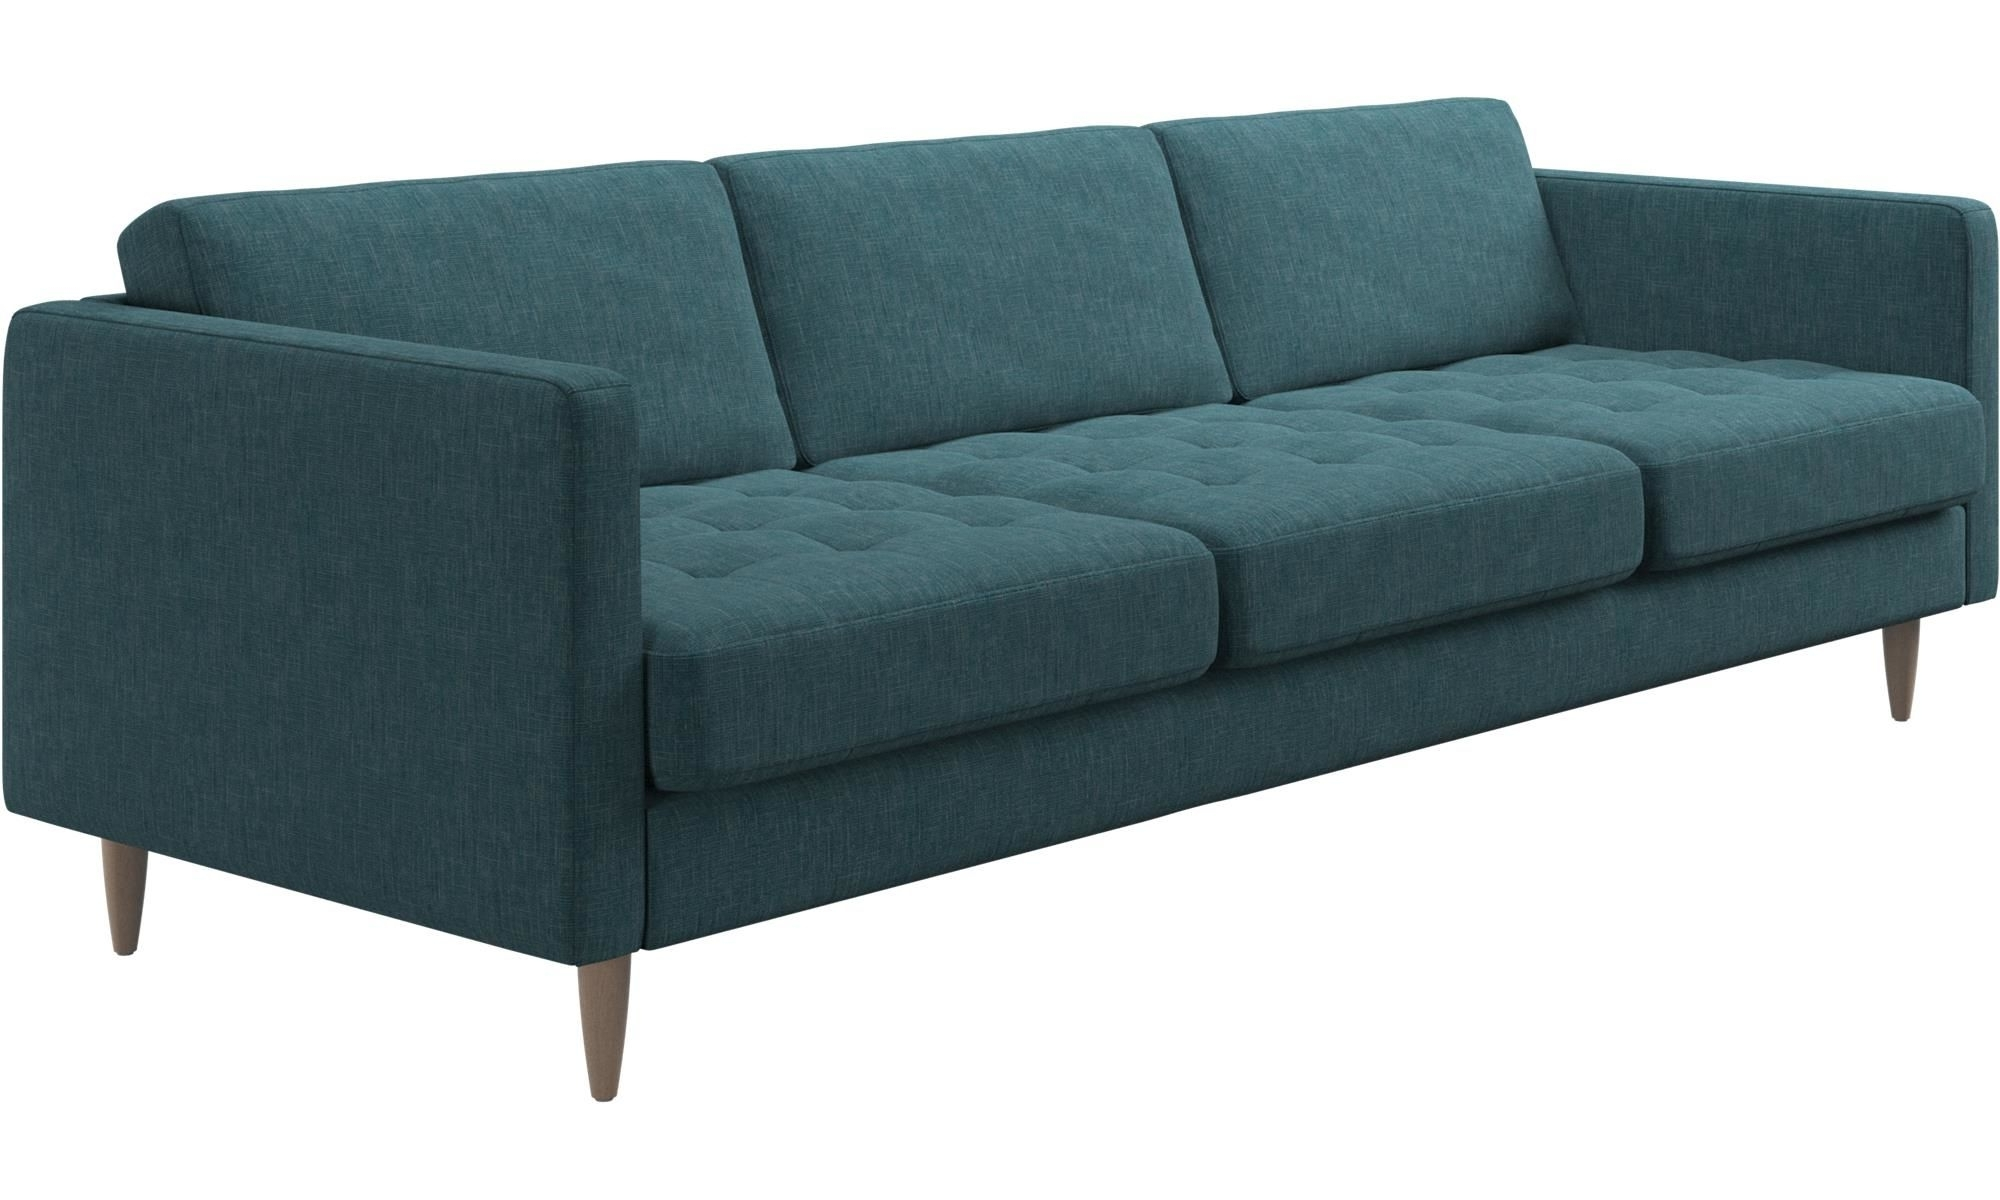 Pensacola Fl Sectional Sofas With Regard To Well Liked Furniture : Kelsey Tufted Loveseat Furniture Craigslist Pensacola (View 11 of 15)